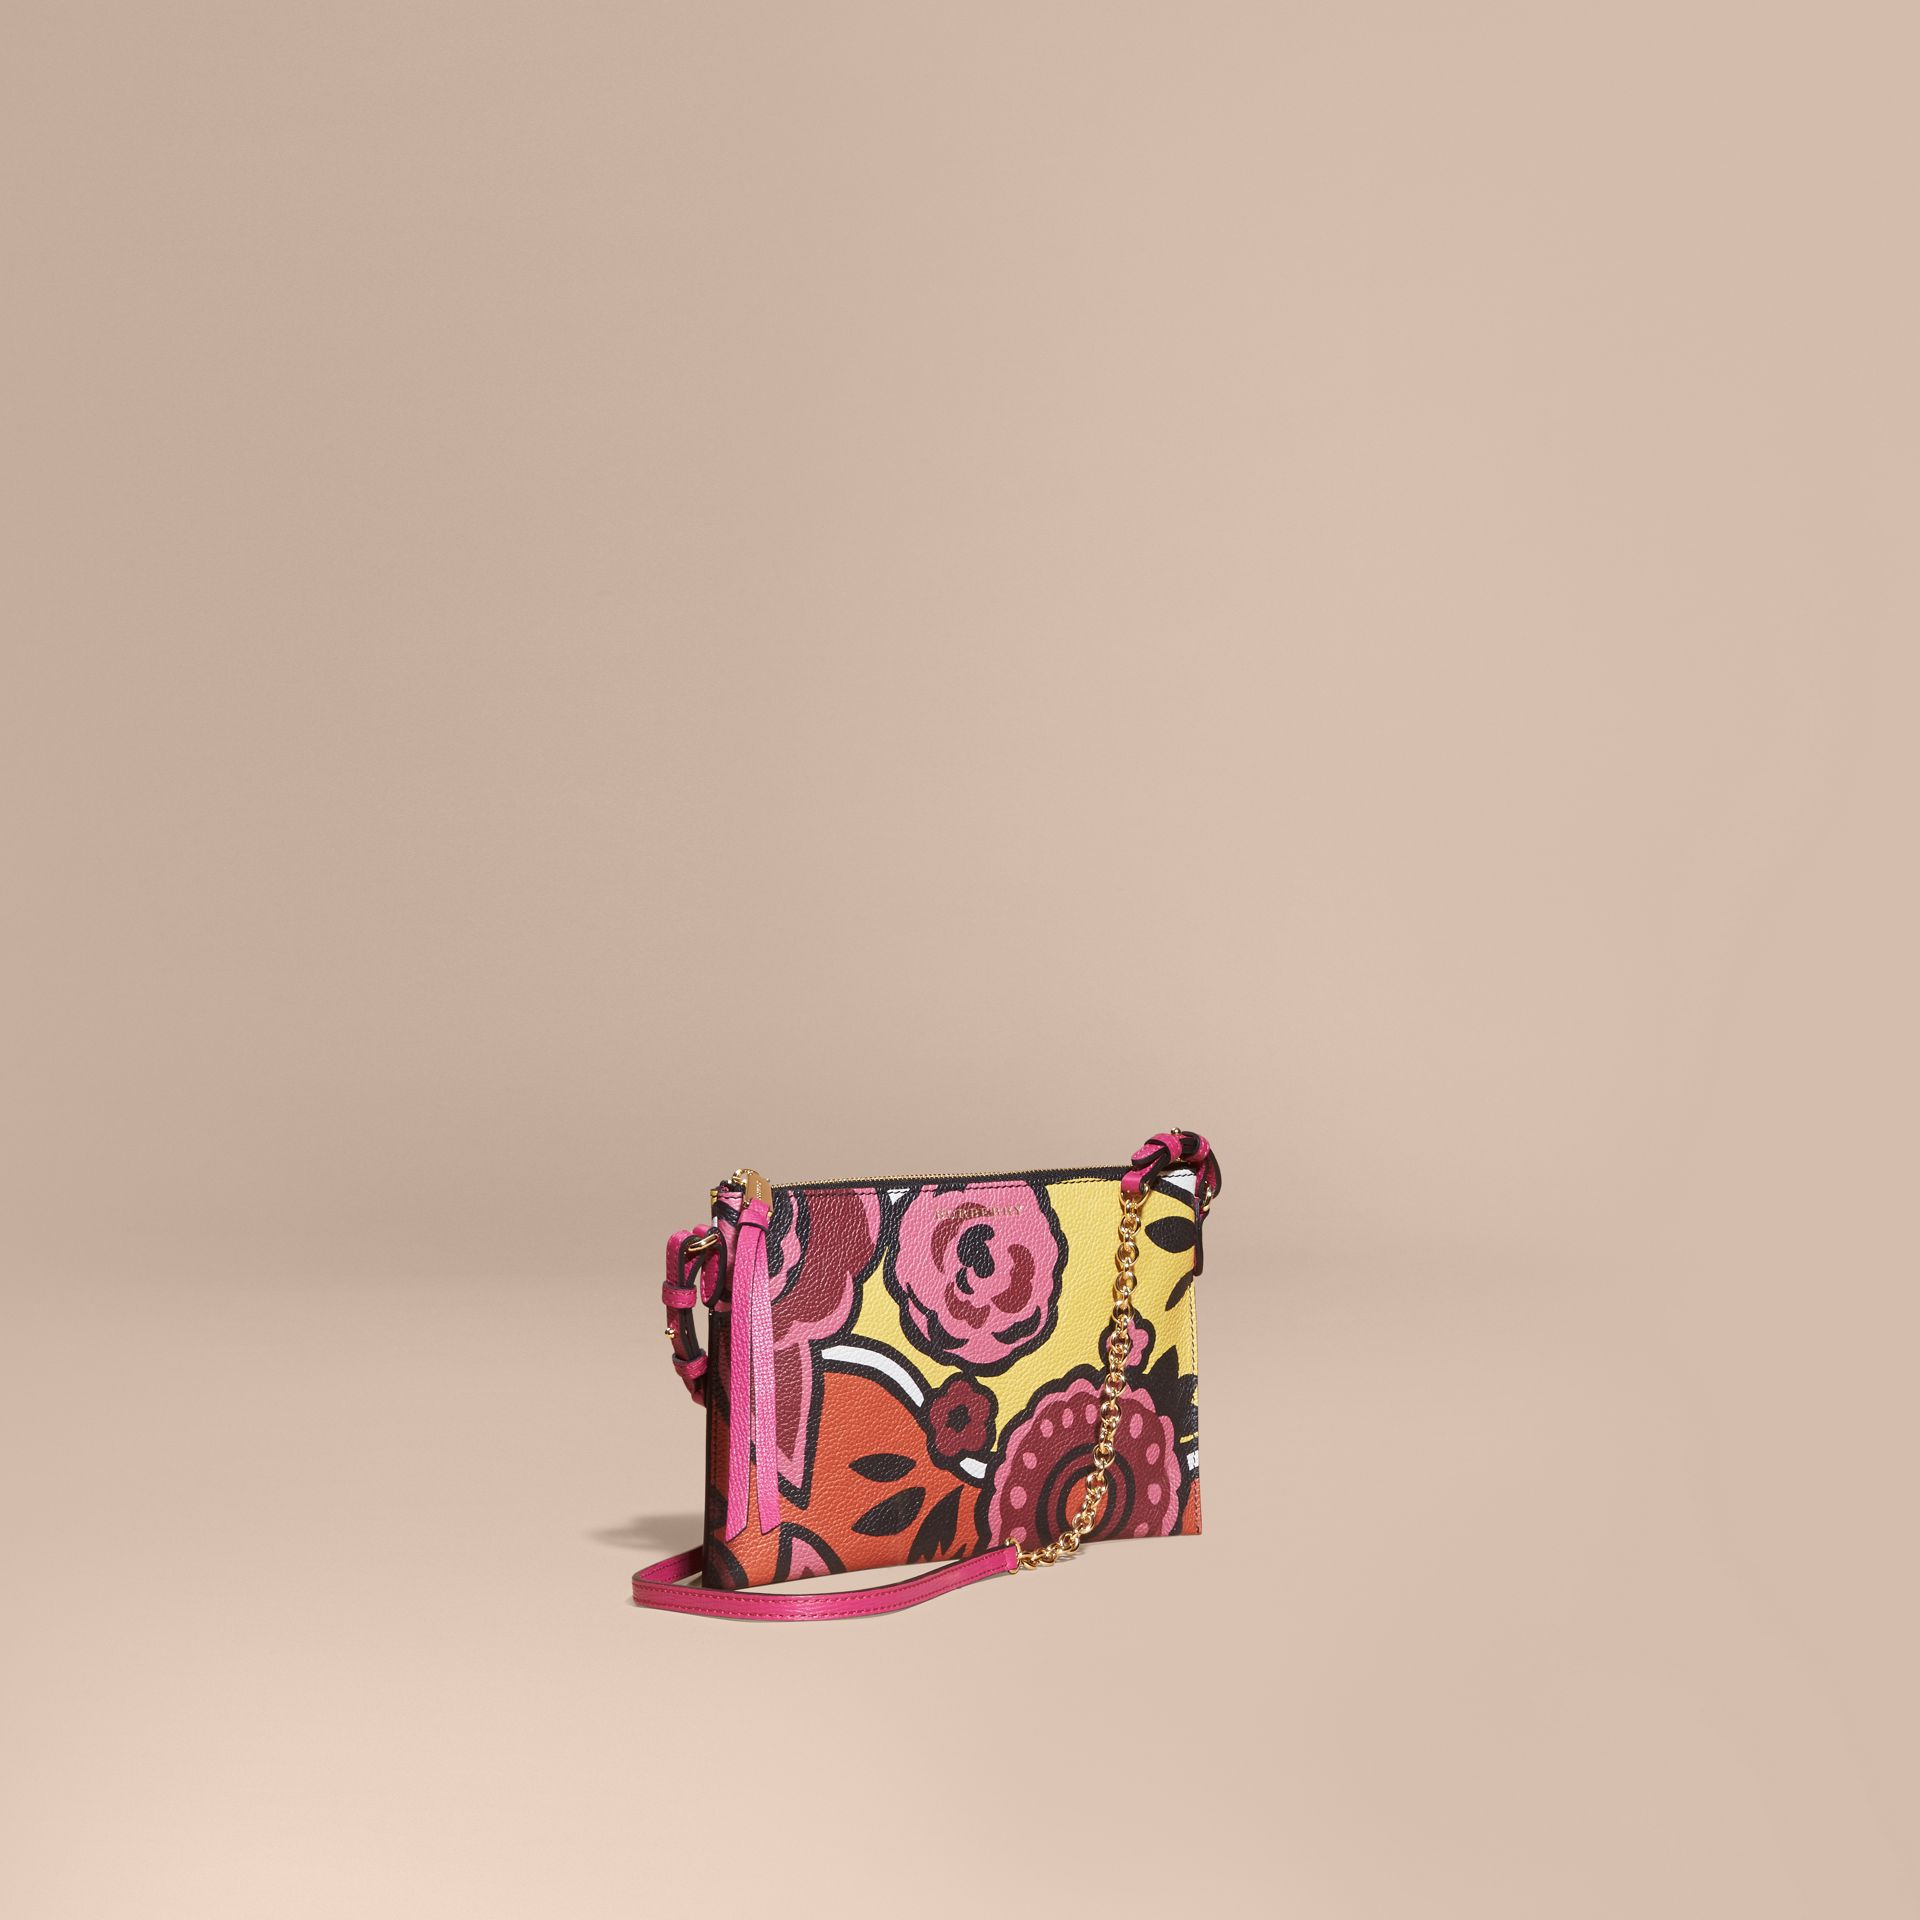 Vibrant orange Floral Print Leather Clutch Bag Vibrant Orange - gallery image 1